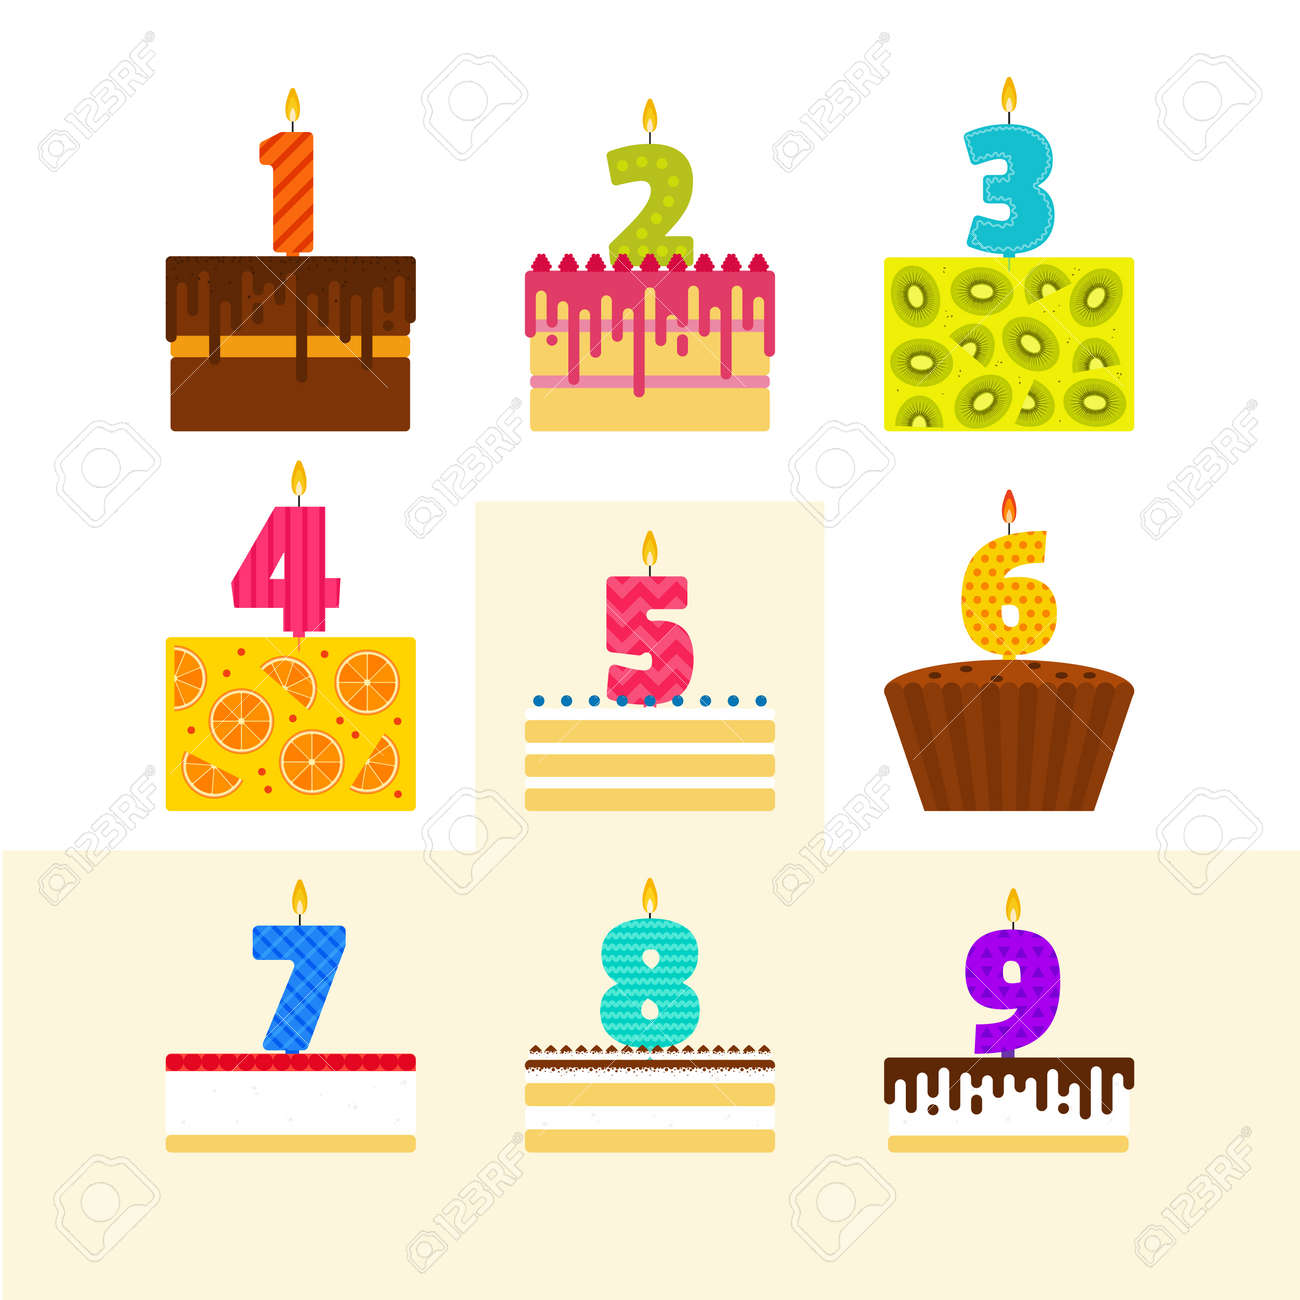 Vector Illustrations Set Of Birthday Cakes With Candles In The